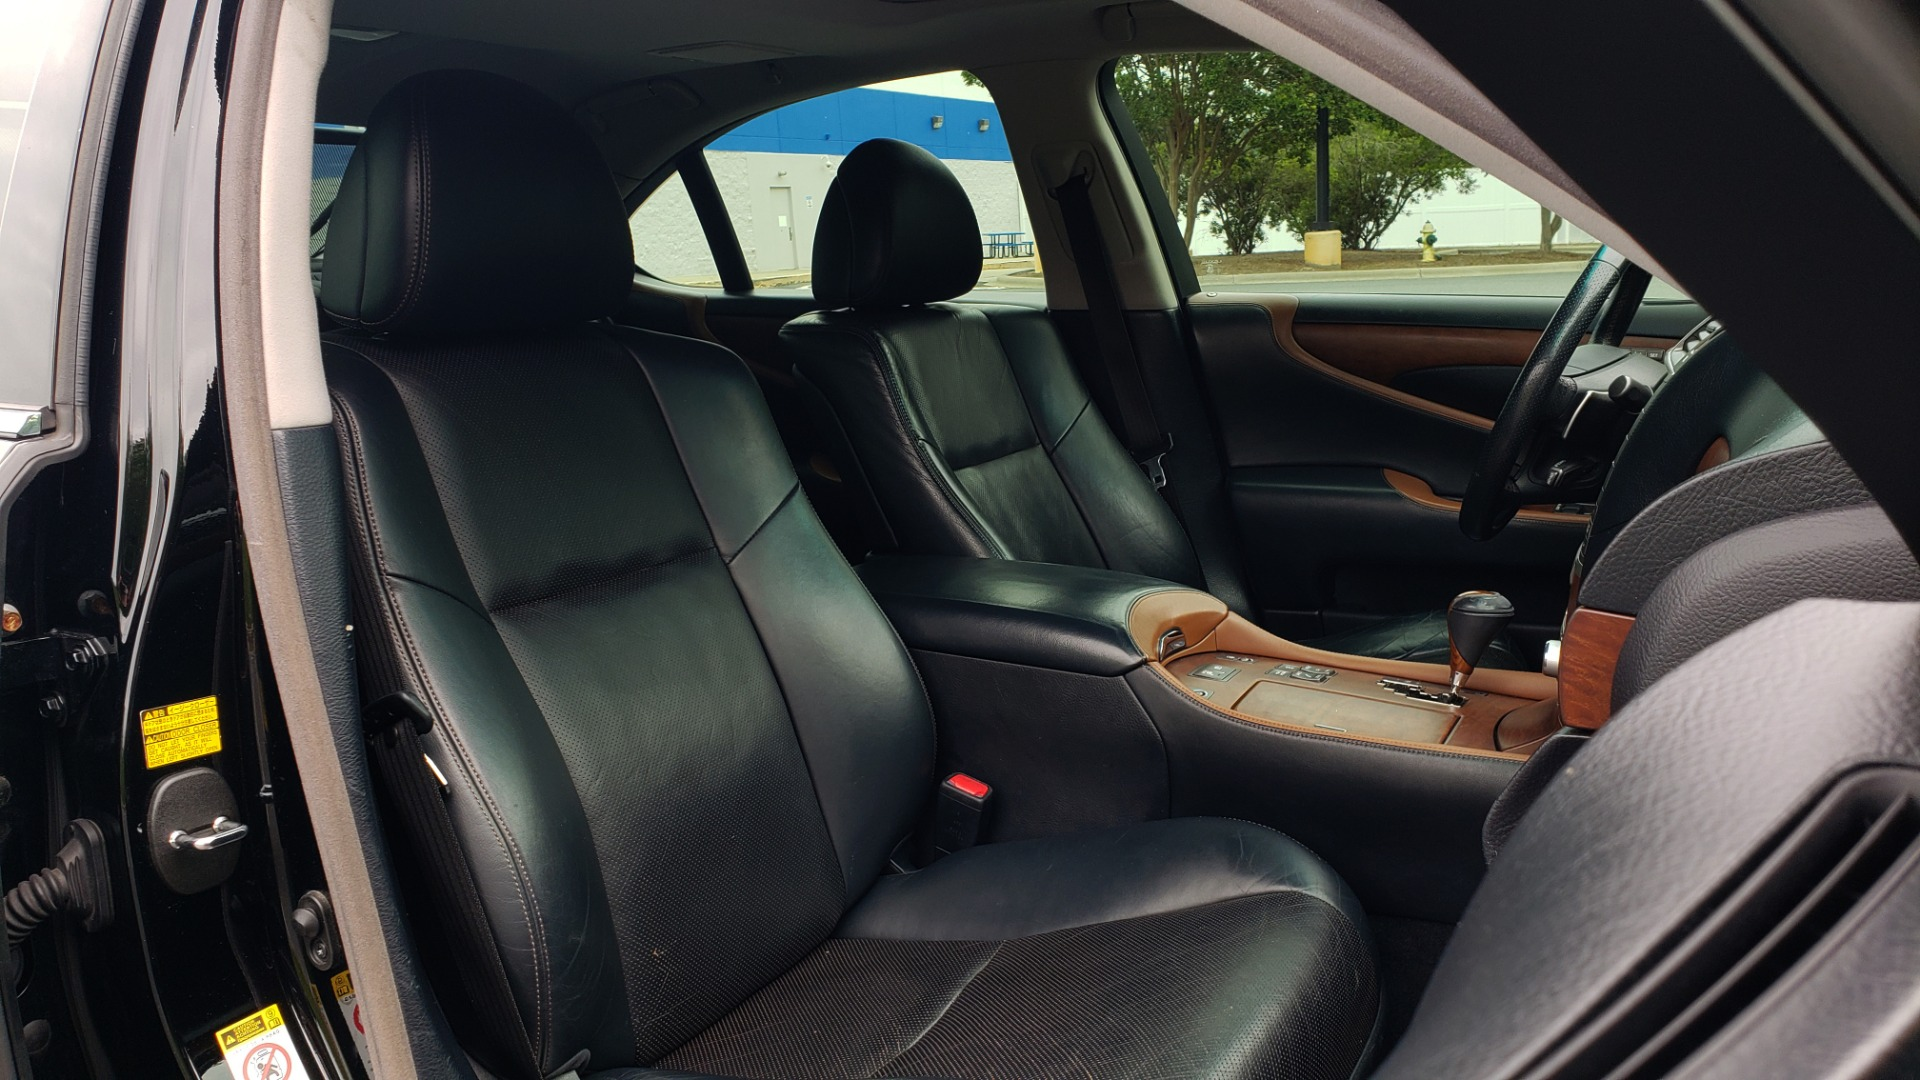 Used 2012 Lexus LS 460 COMFORT W/SPORT / VENT SEATS / NAV / MARK LEV SND / SUNROOF for sale Sold at Formula Imports in Charlotte NC 28227 68